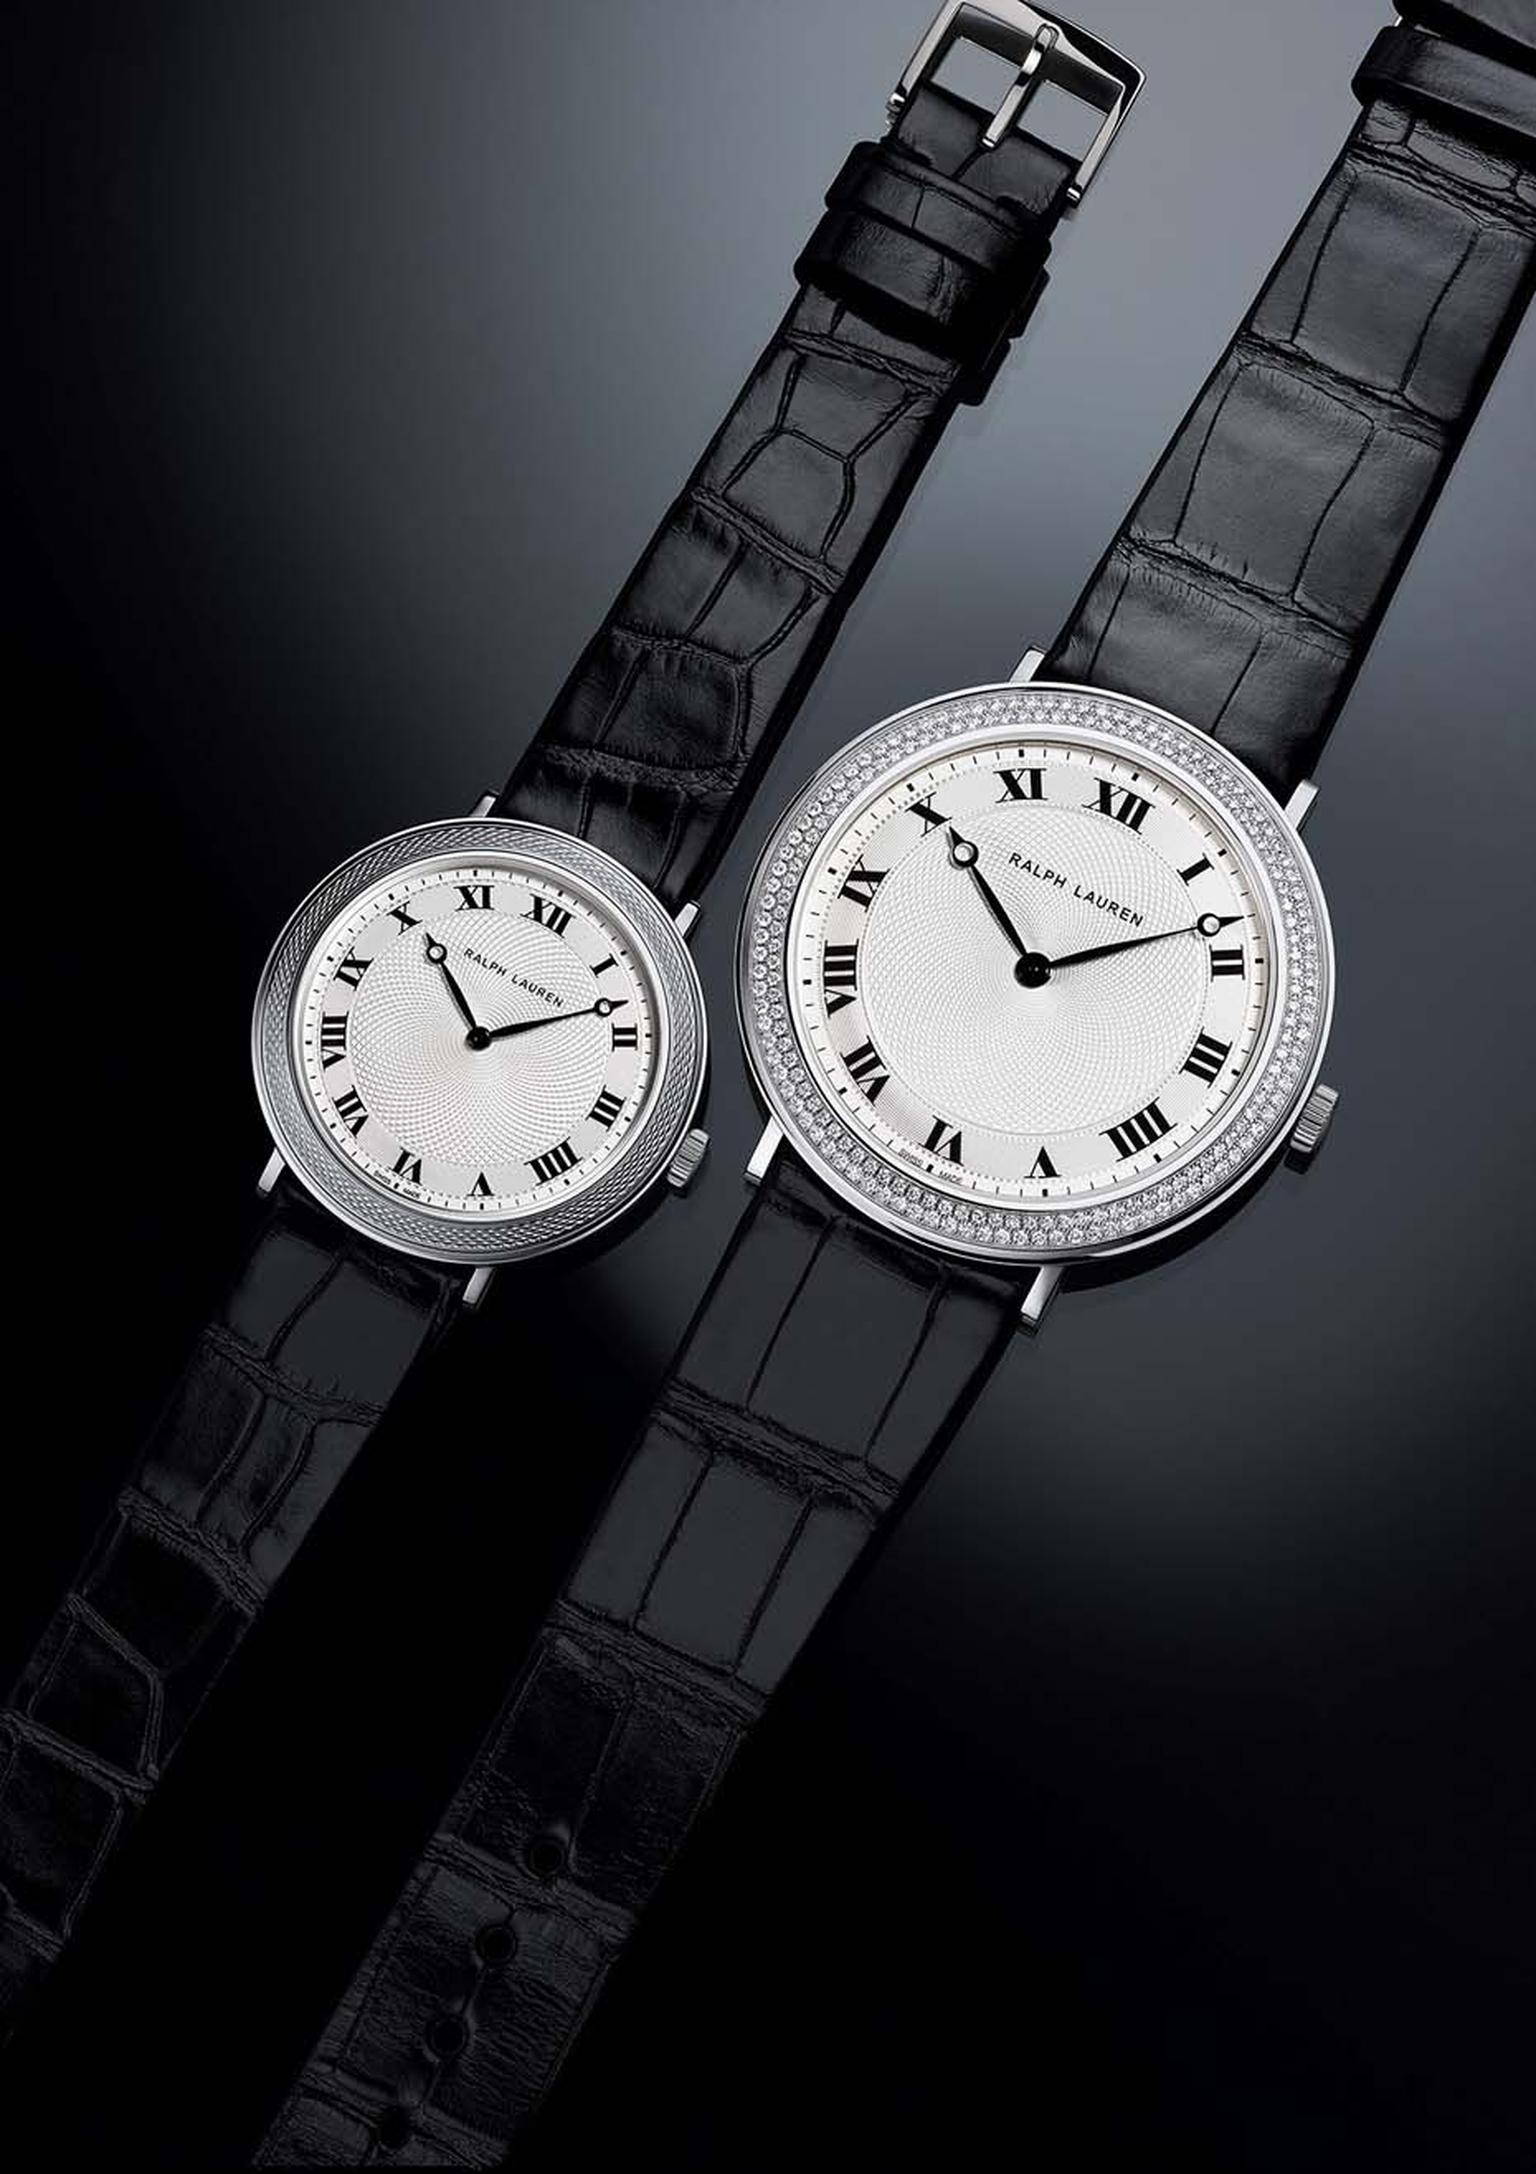 Ralph Lauren Slim Classique collection watches in white gold